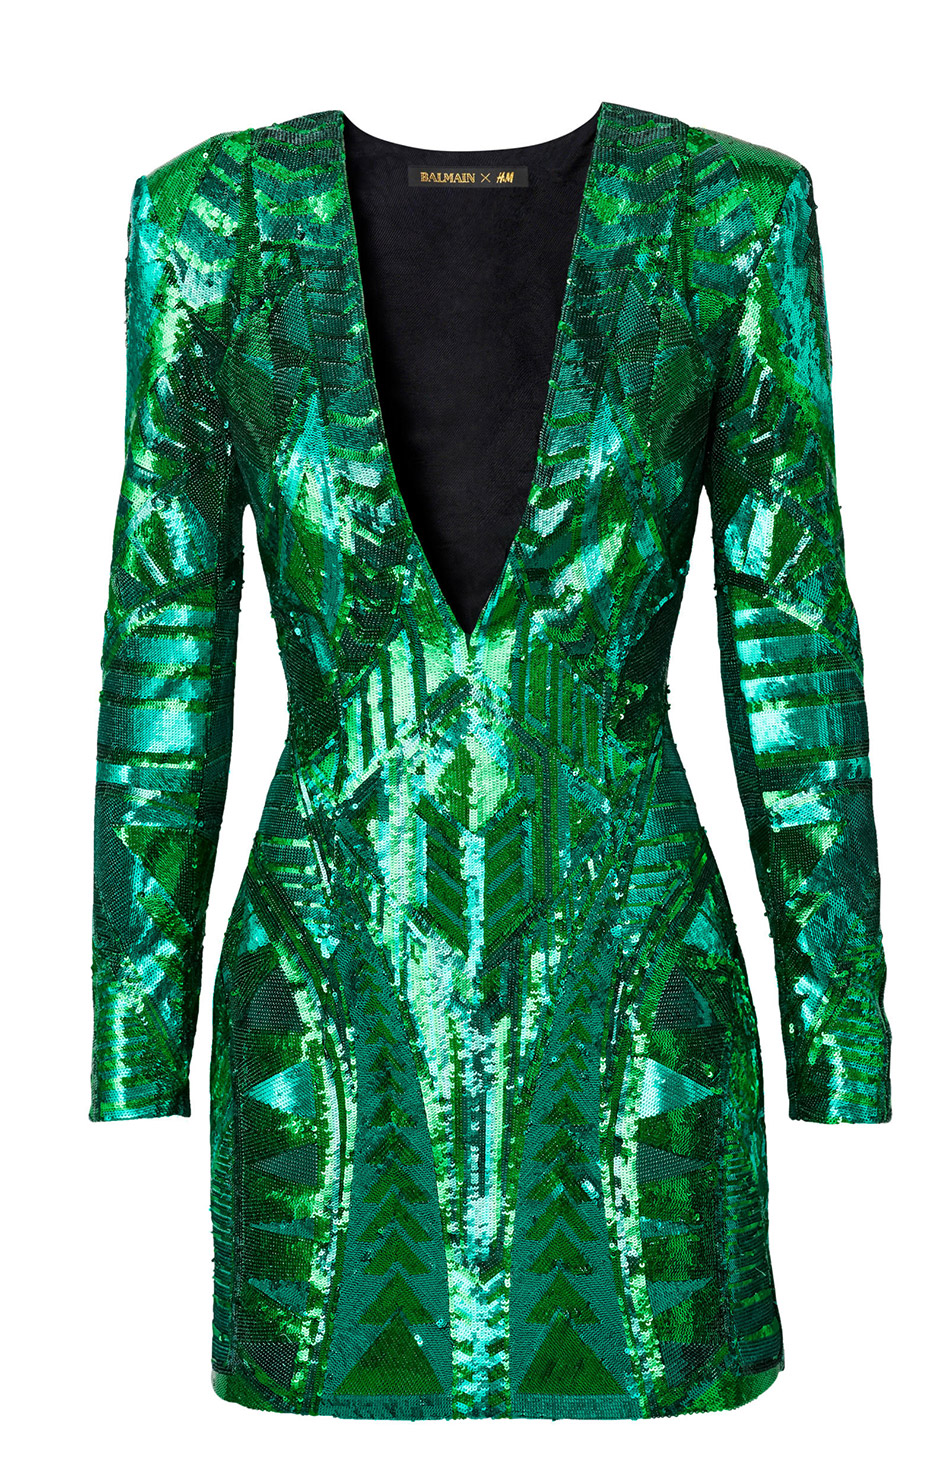 Balmain x h m women 39 s collection prices - Ancienne collection h m ...